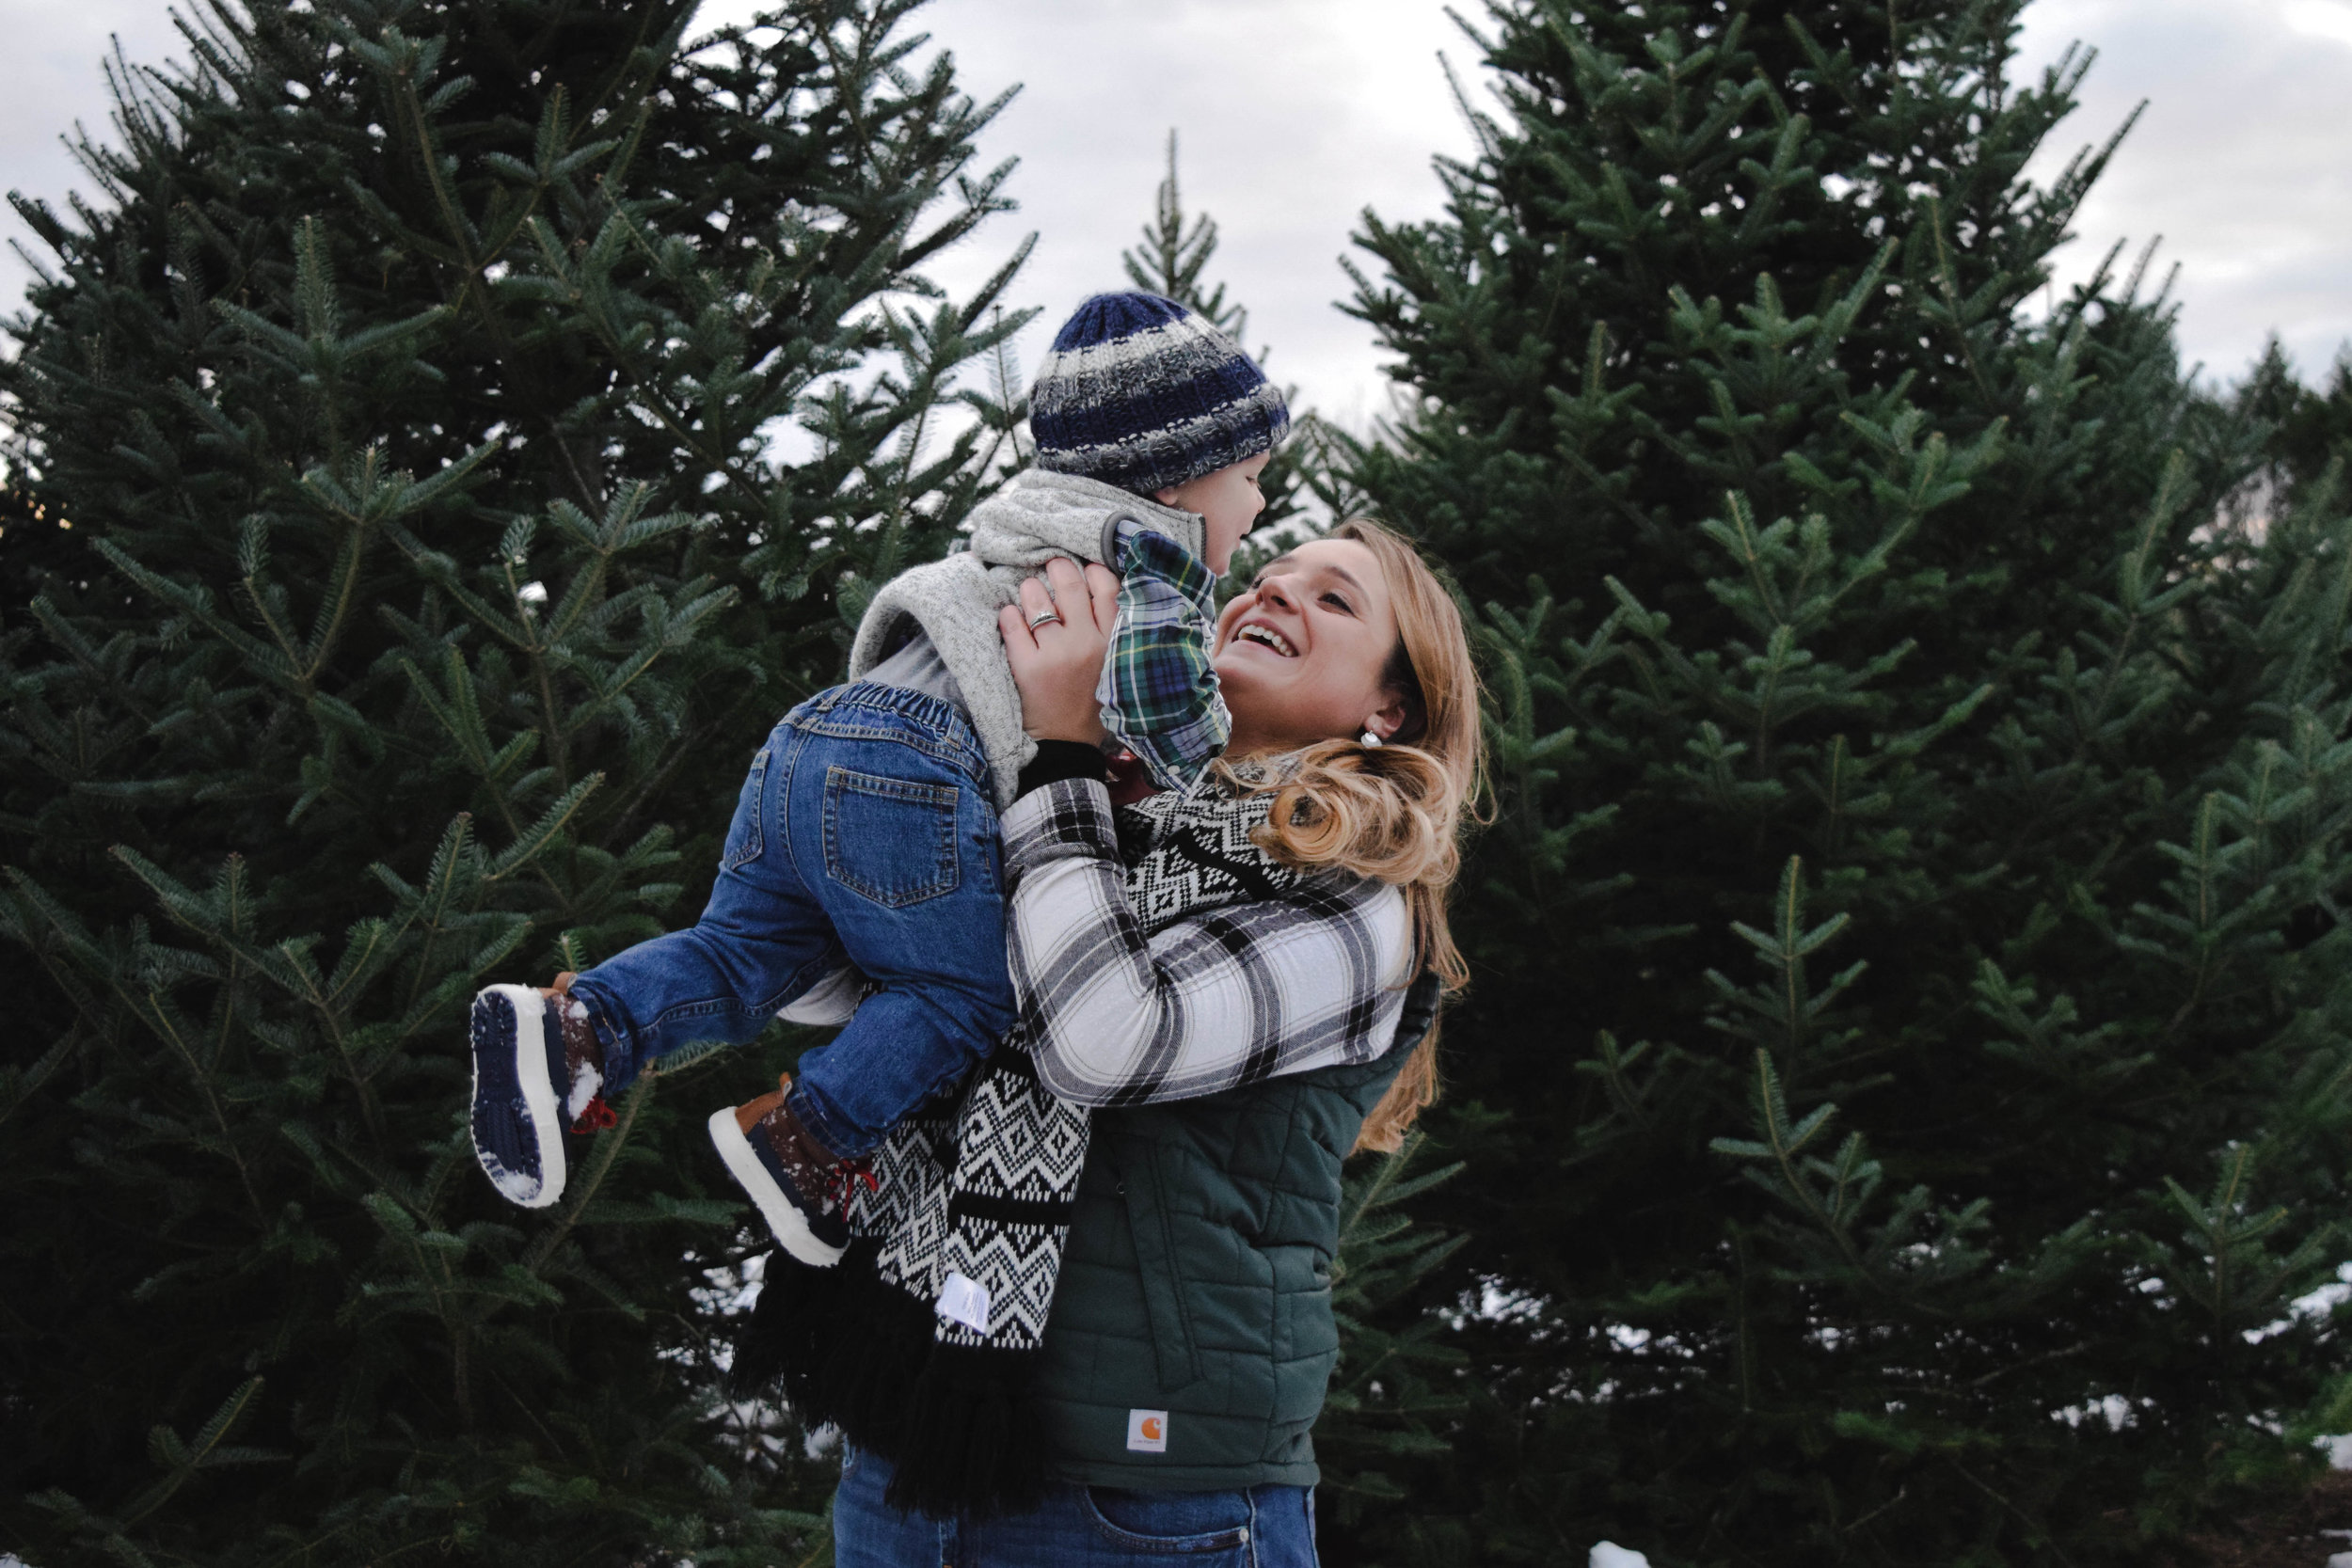 // Brayton Family // - The cutest family ❤️ We had such a fun time taking photos. This little one decided it was so much more fun to play in the snow so we just went with it. We knew it was time to go when our hands were too cold to play in the snow ❄️ Happy Thanksgiving to all ❤️